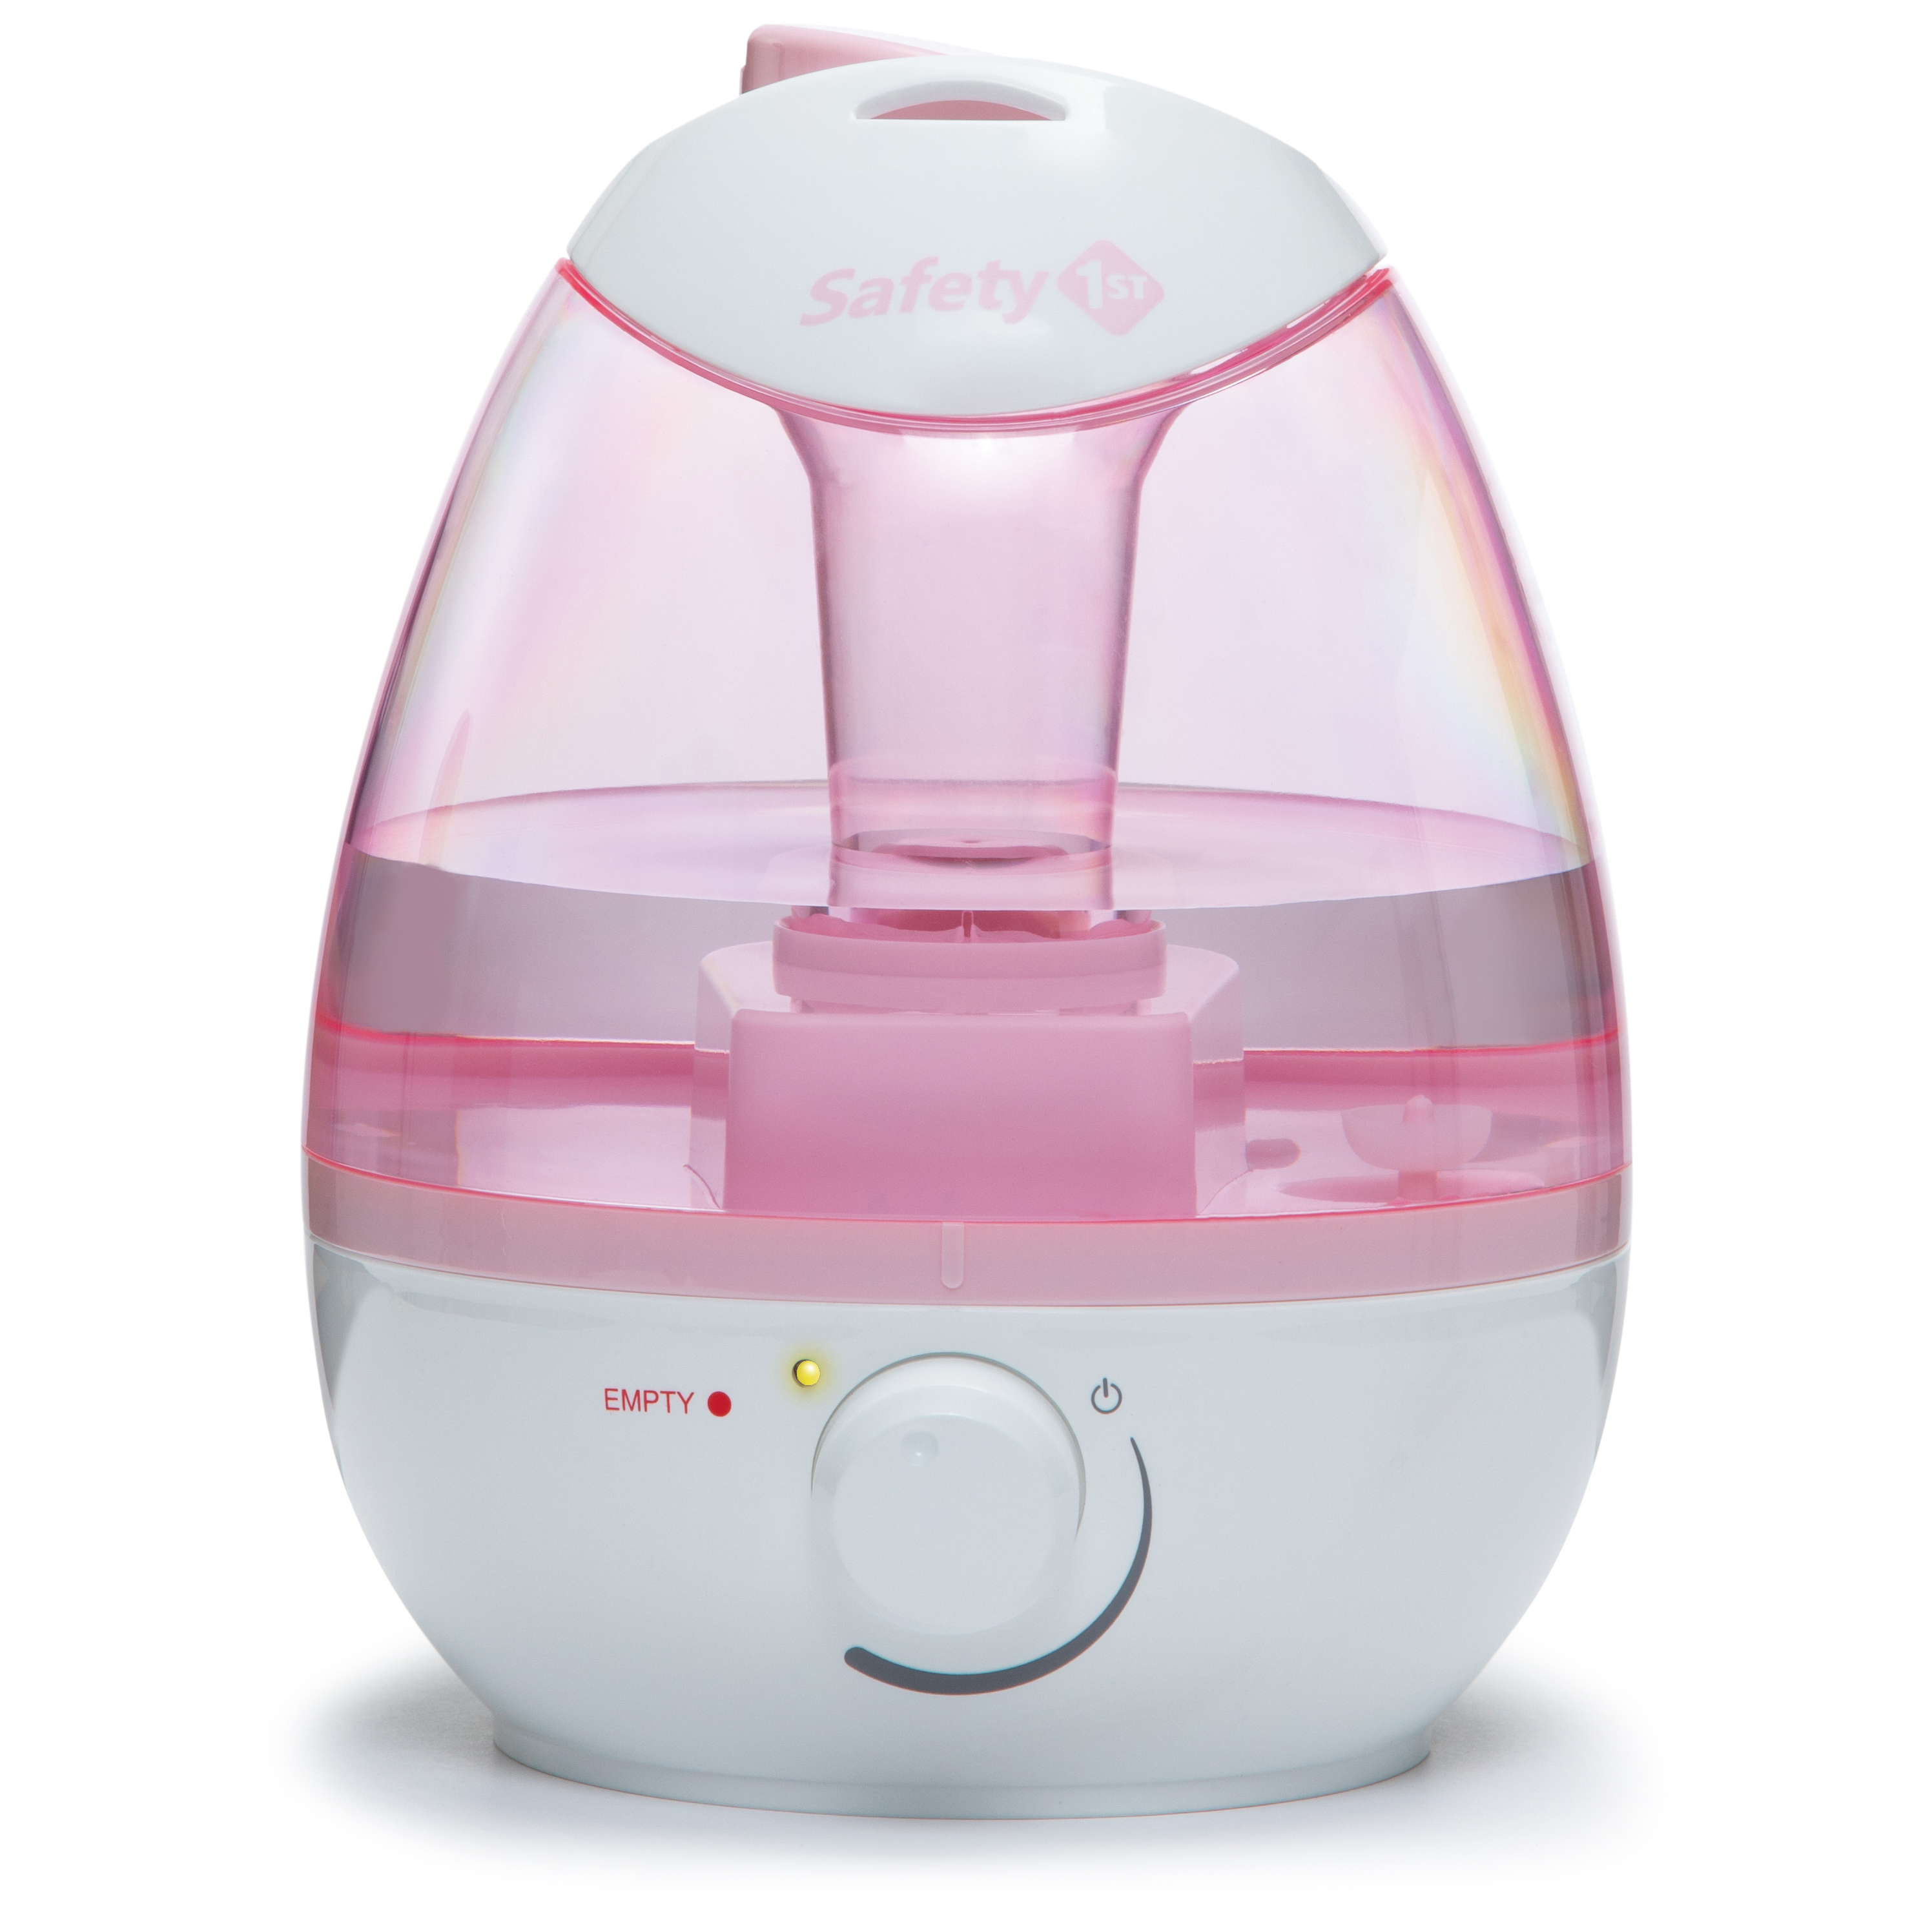 FILTER FREE COOL HUMIDIFIER